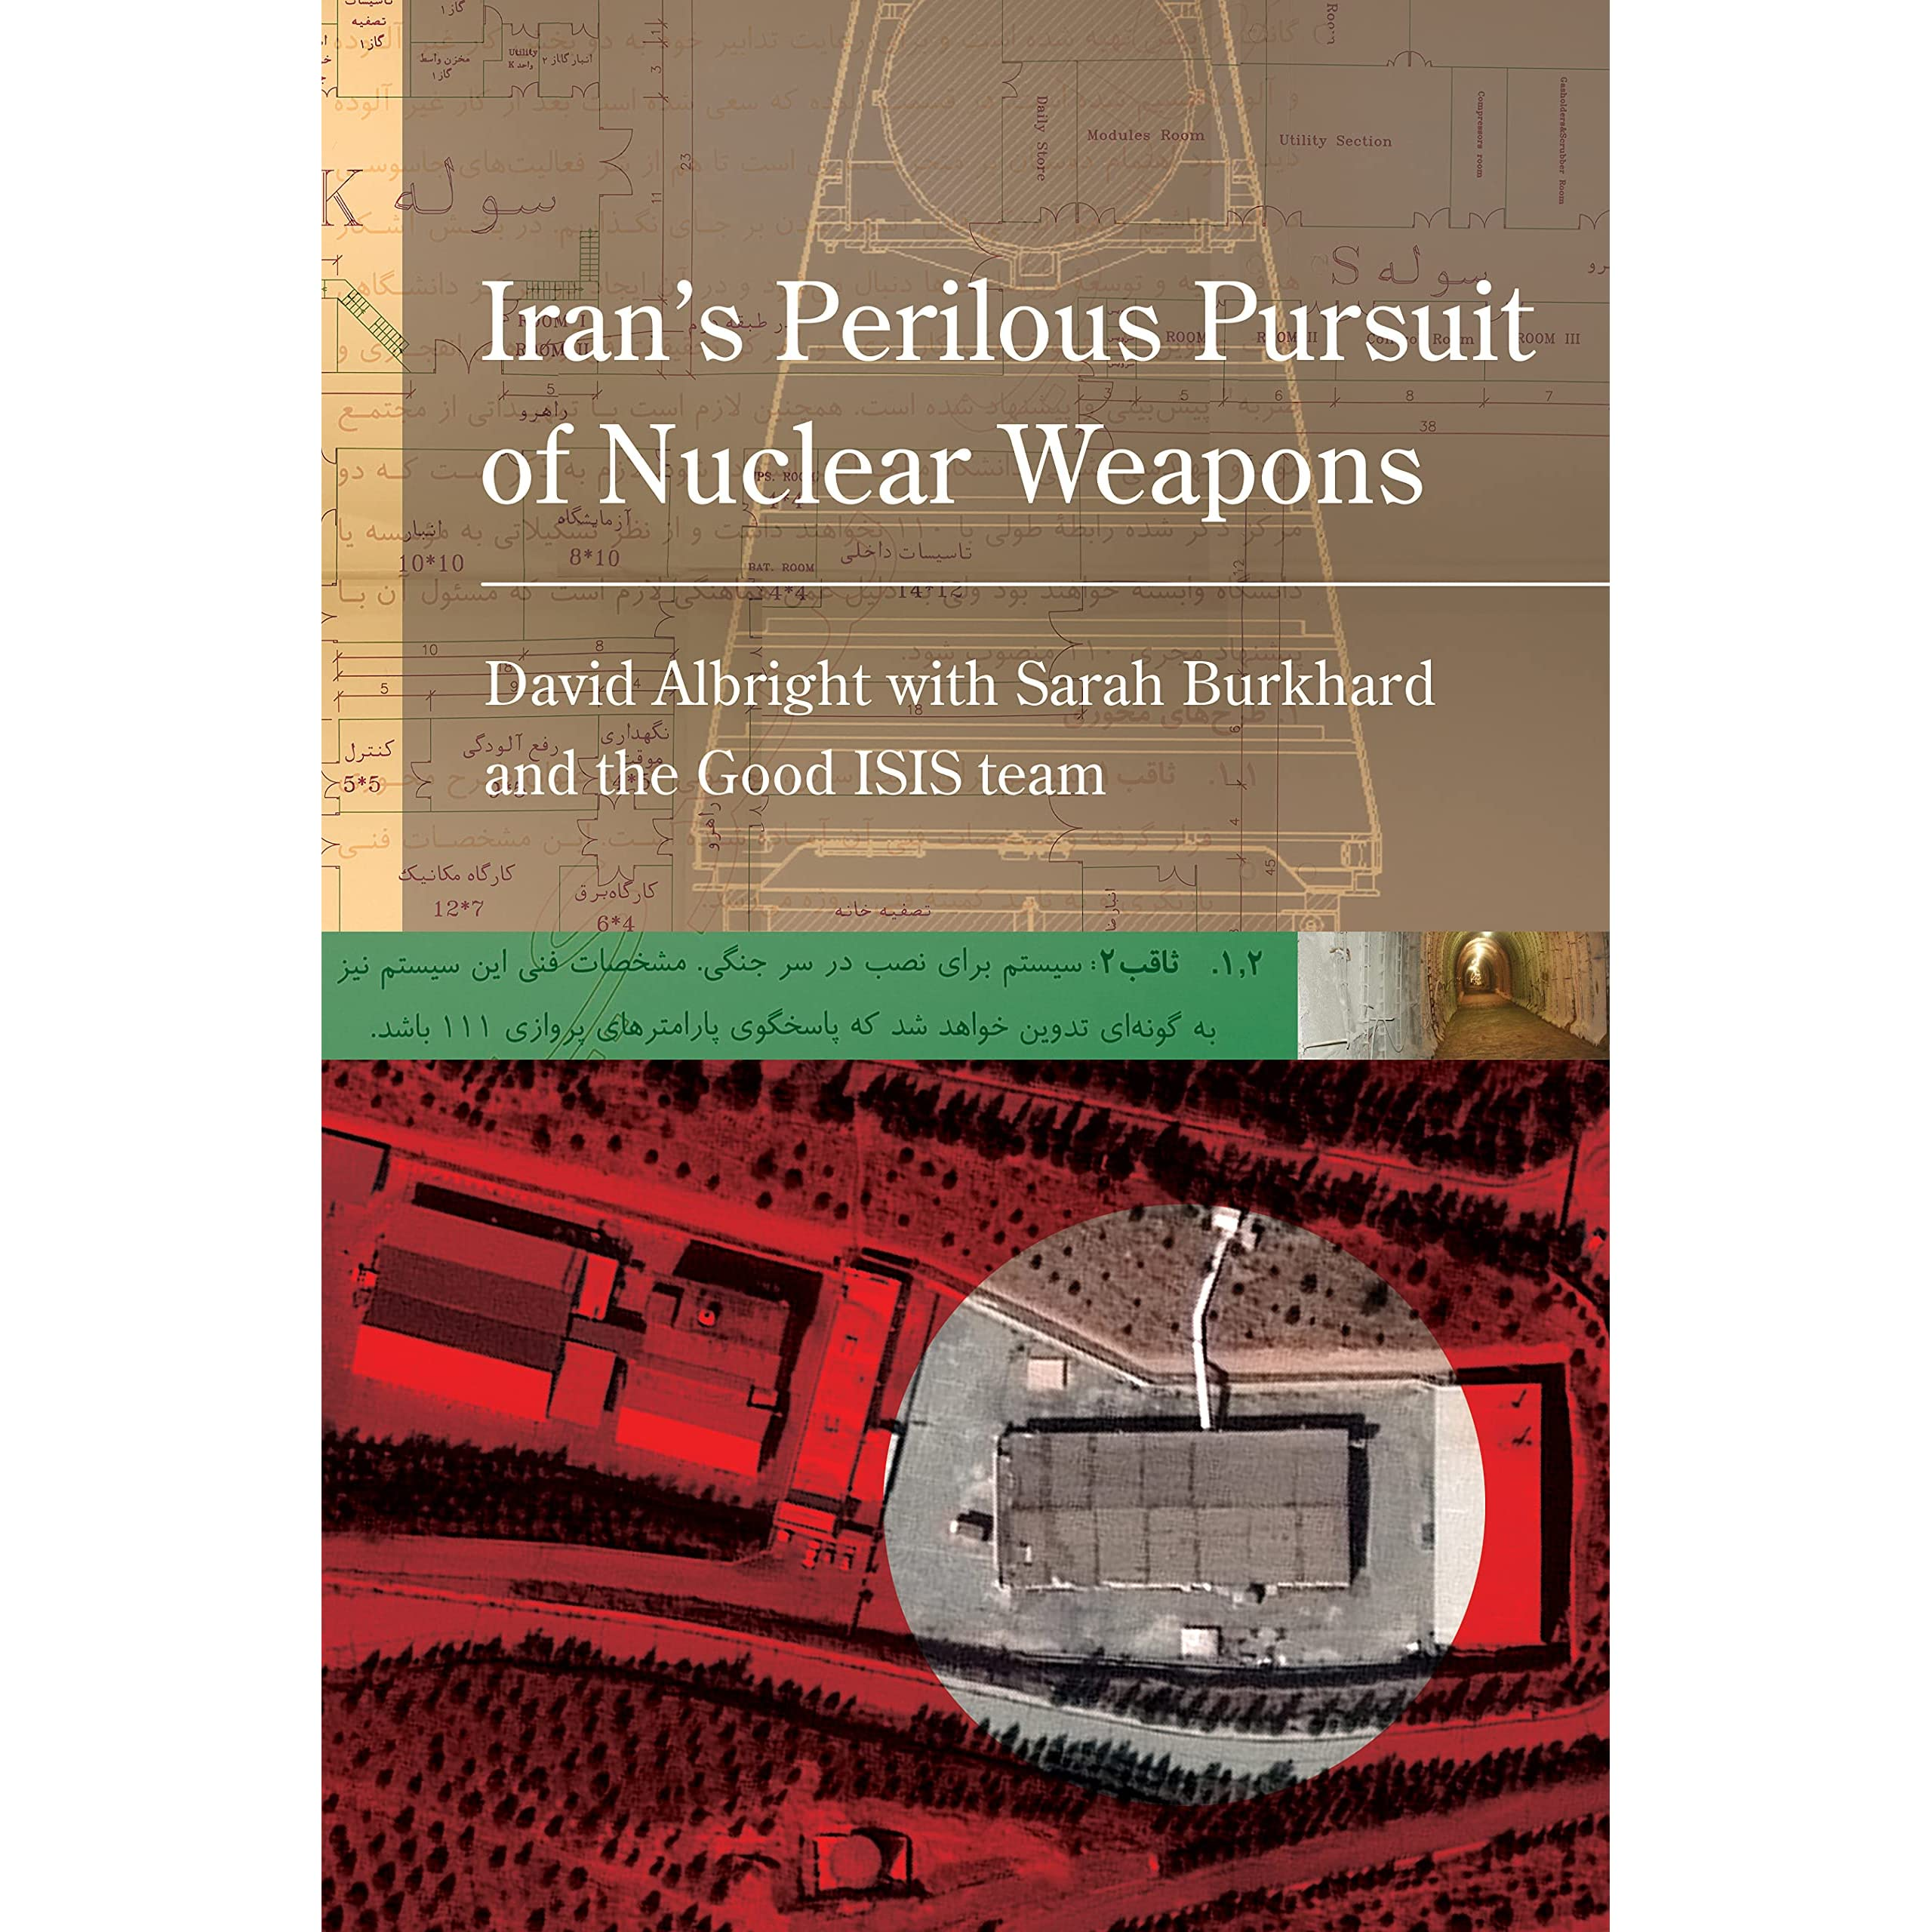 Iran's Perilous Pursuit of Nuclear Weapons by David Albright